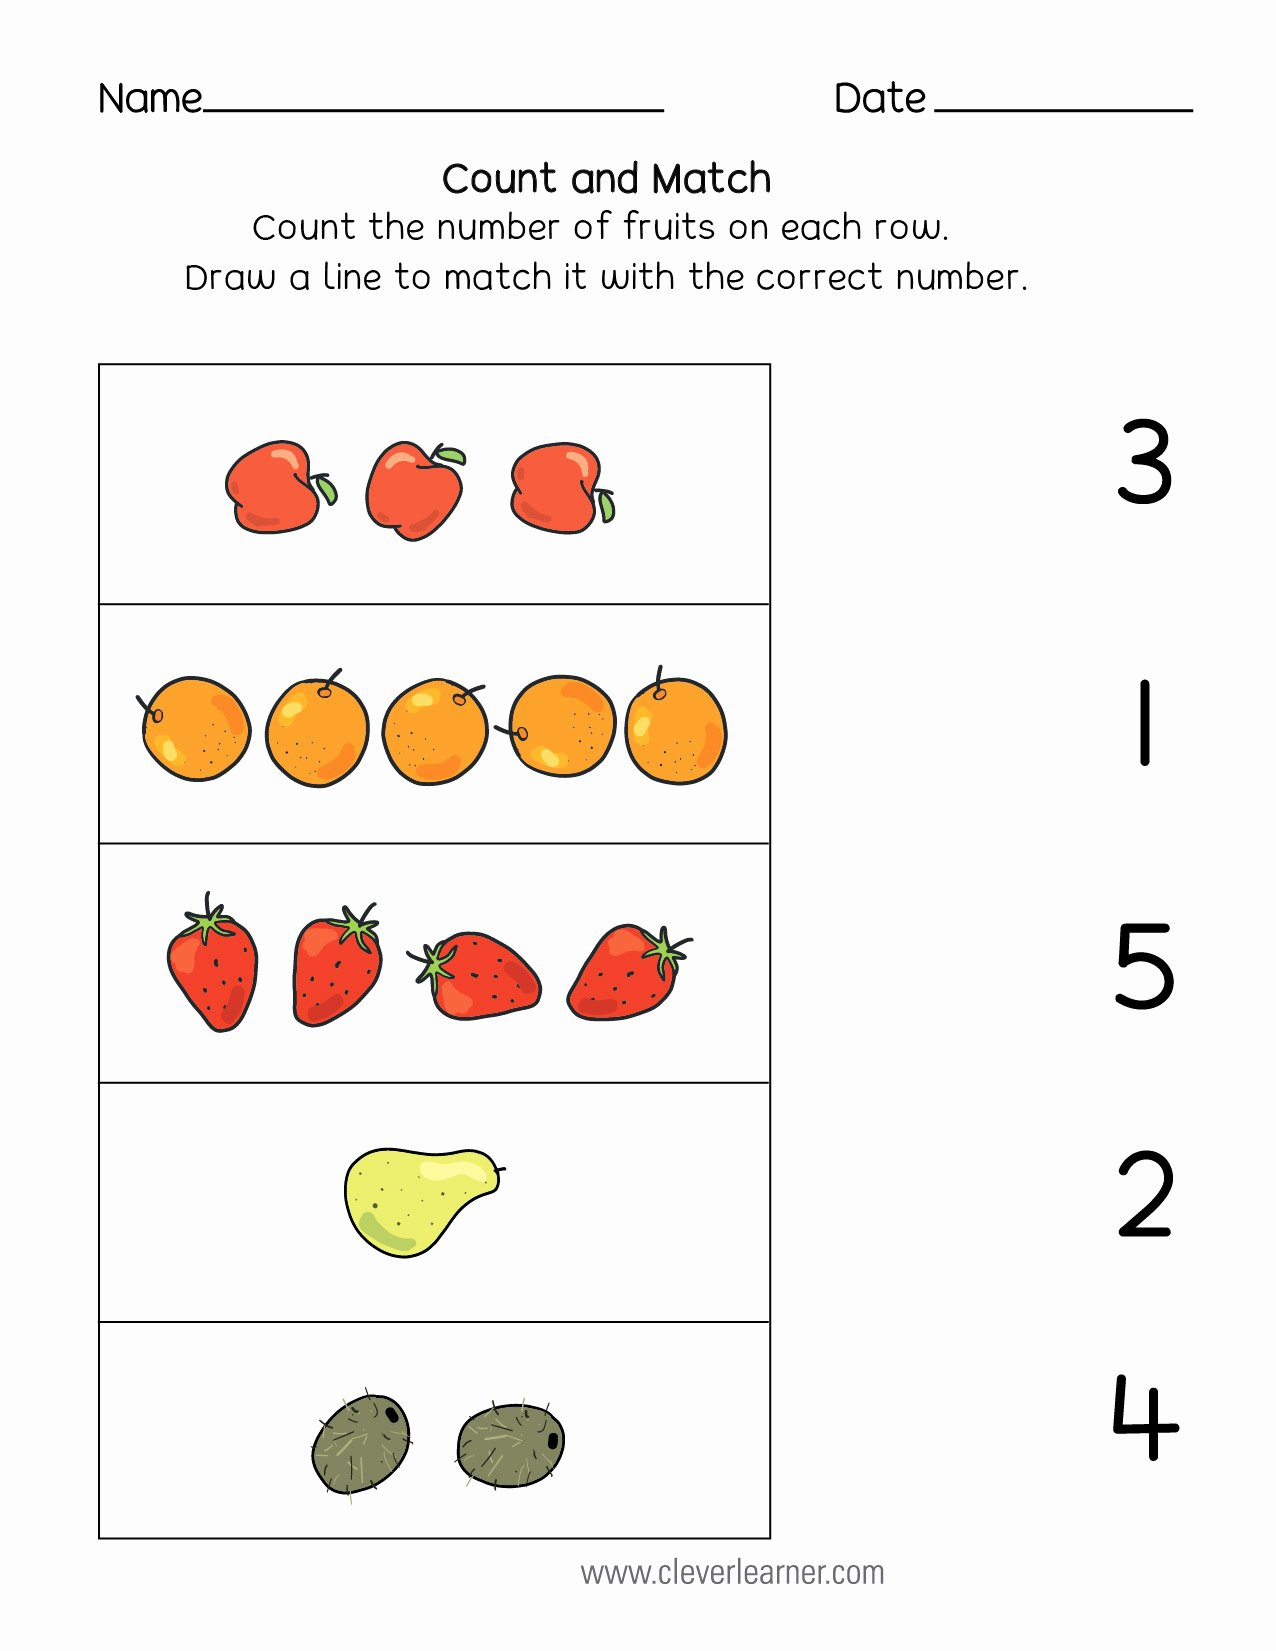 Matching Numbers Worksheets for Preschoolers Beautiful Number Matching Counting and Number Writing Worksheets